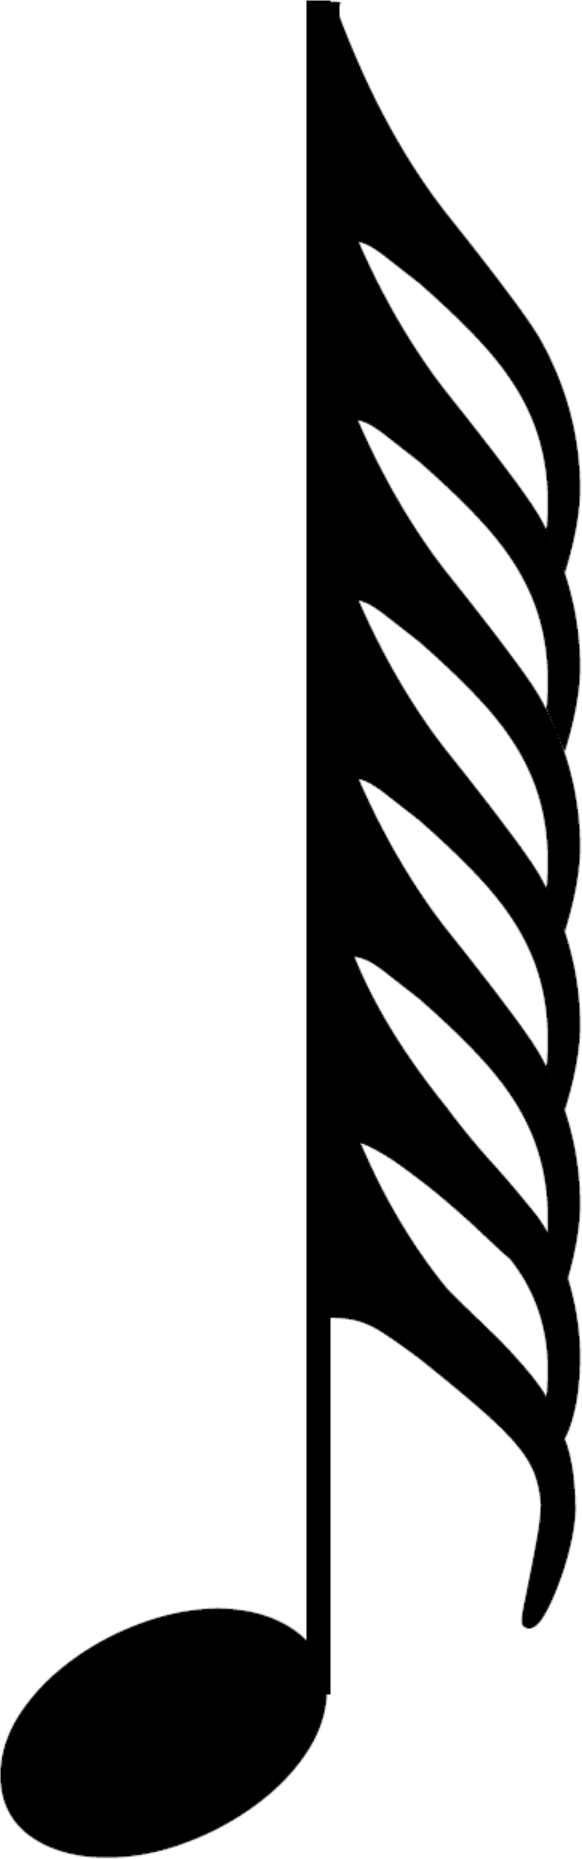 An HD five hundred and twelfth note, also called a hemidemisemihemidemisemiquaver; a musical symbol and musical note value.